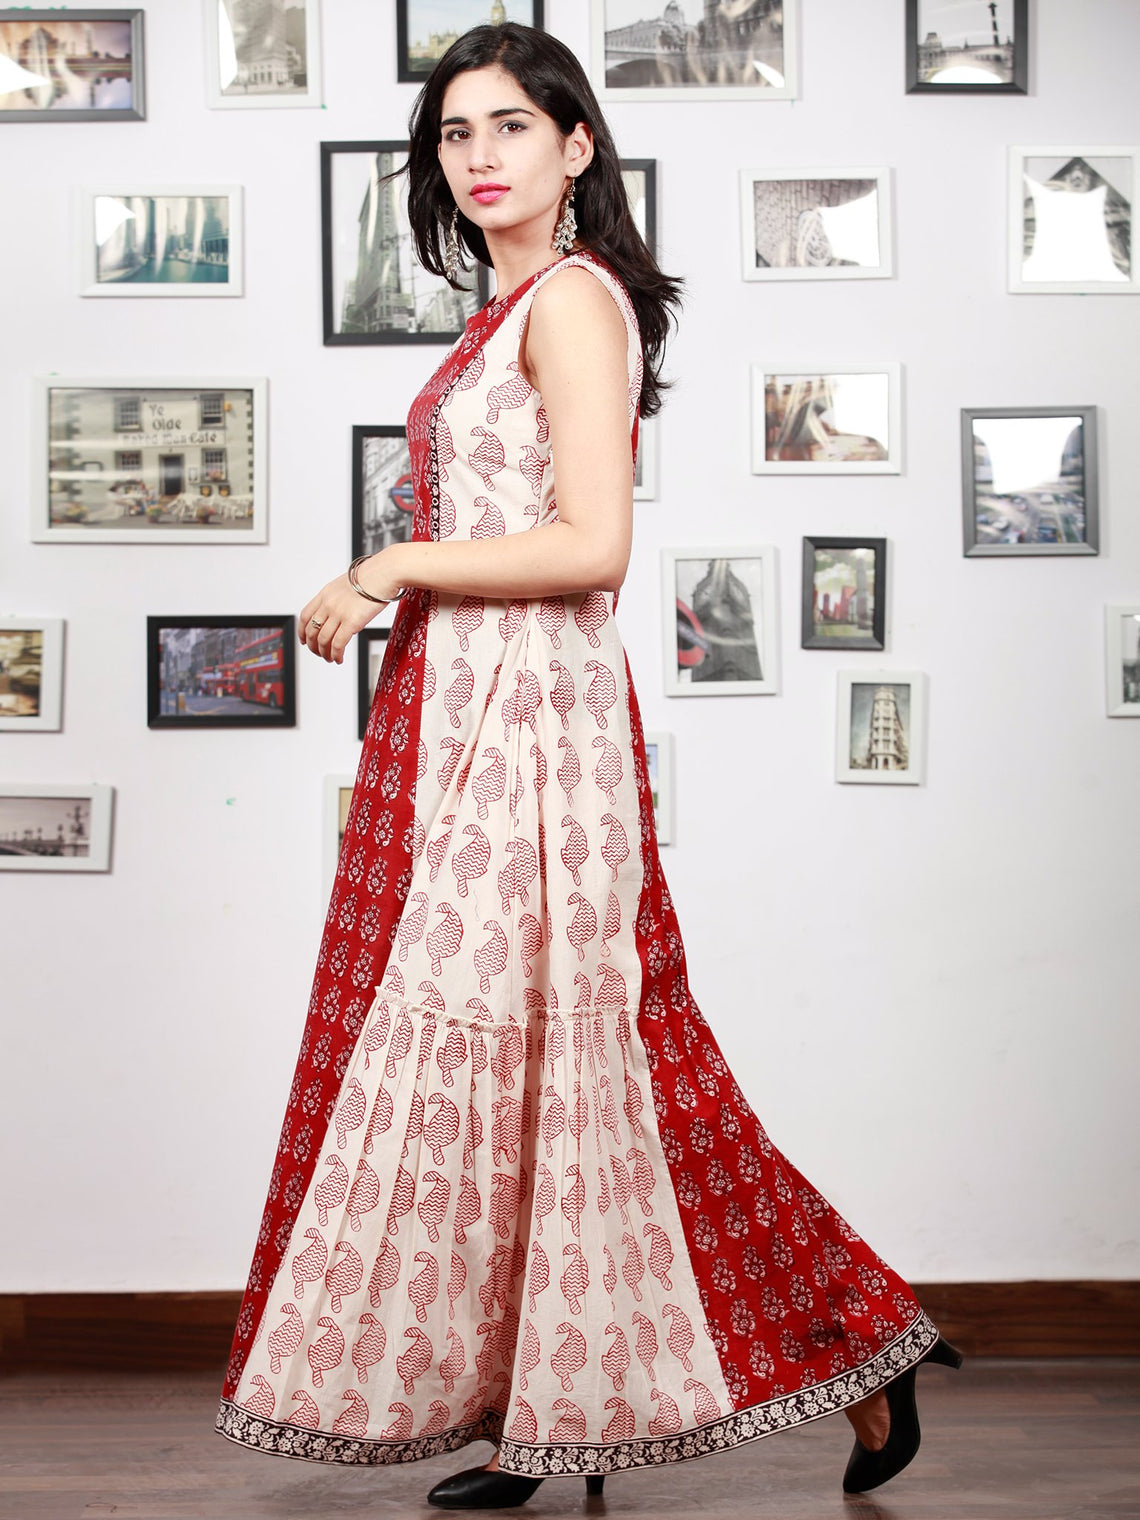 White Red Black Bagh Printed Cotton Long Sleeveless Dress With Tier - D297F1721